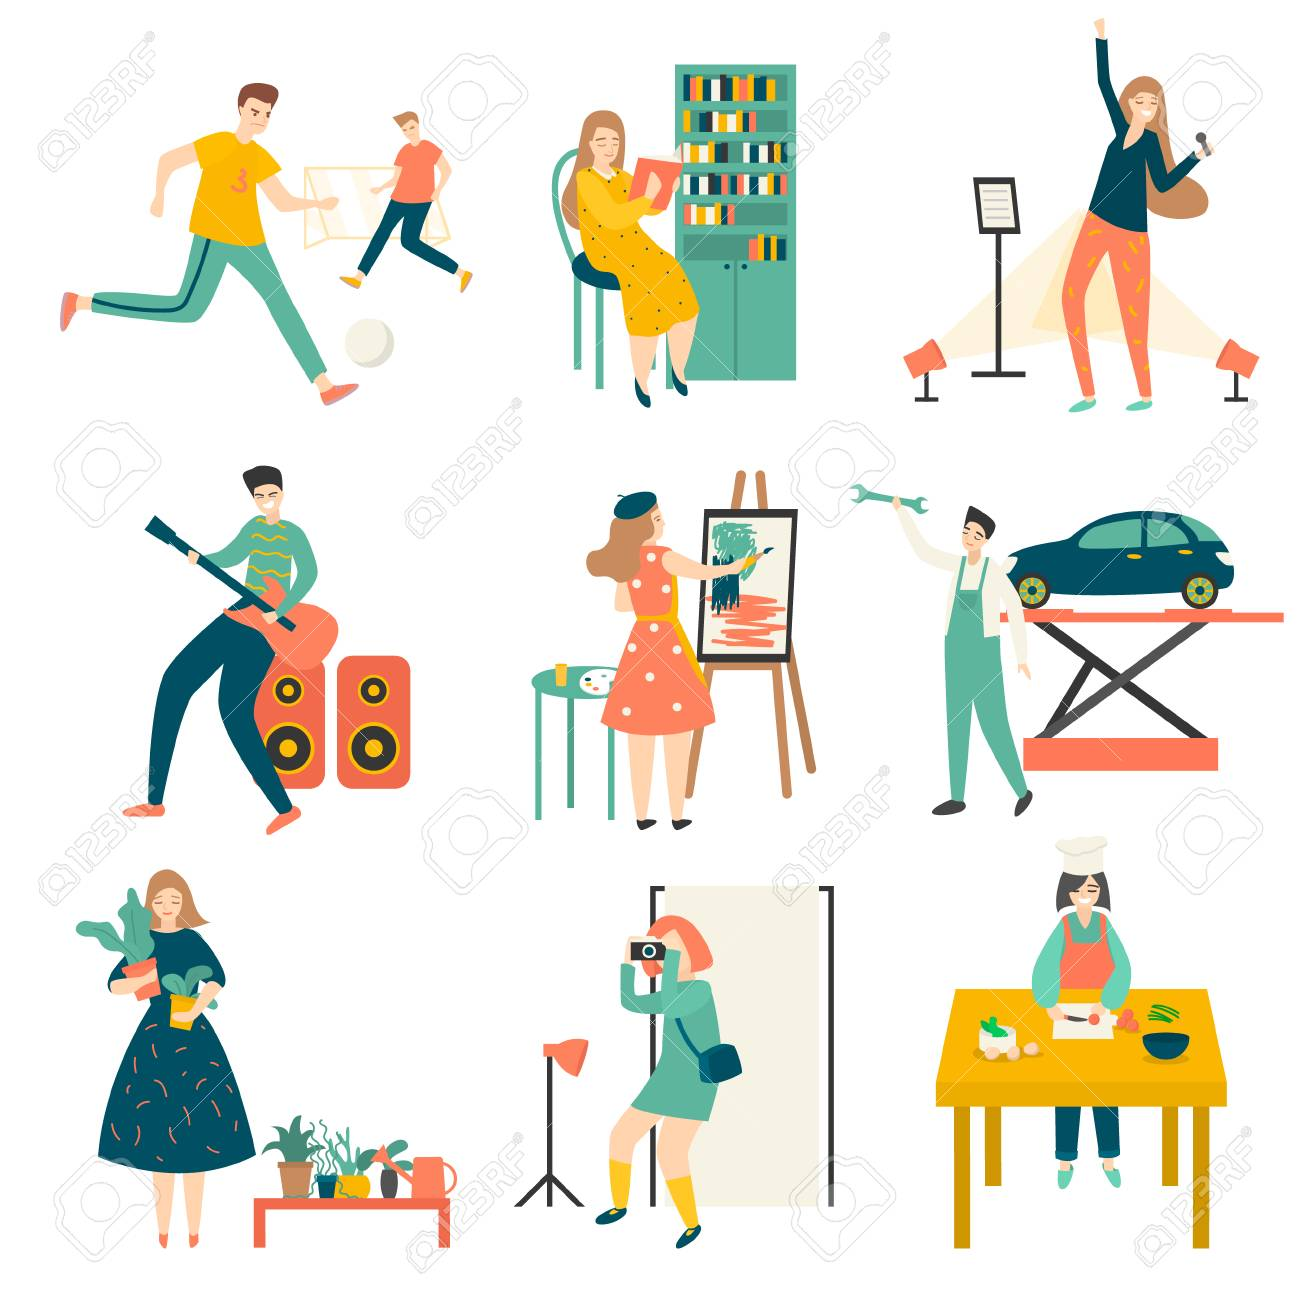 In their free time, people practice their favorite hobbies, play football, plant flowers, cook, repair cars, play musical instruments, draw, go to the gym, play computer games, and more. Illustration isolated on white background - 127522965